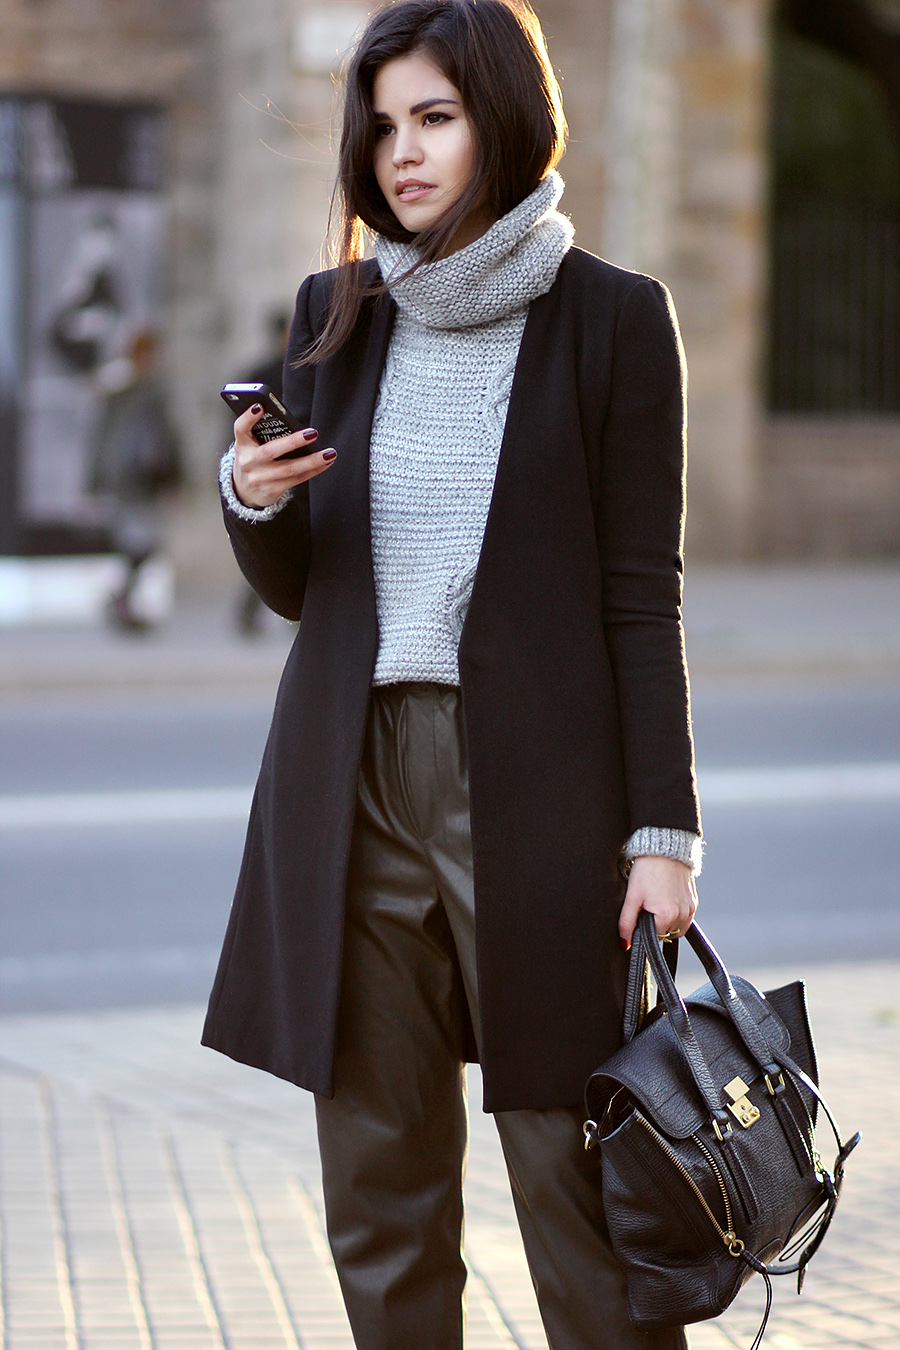 The Roll Neck And Turtleneck Trend…. Outfits We'd Wear - Just The ...